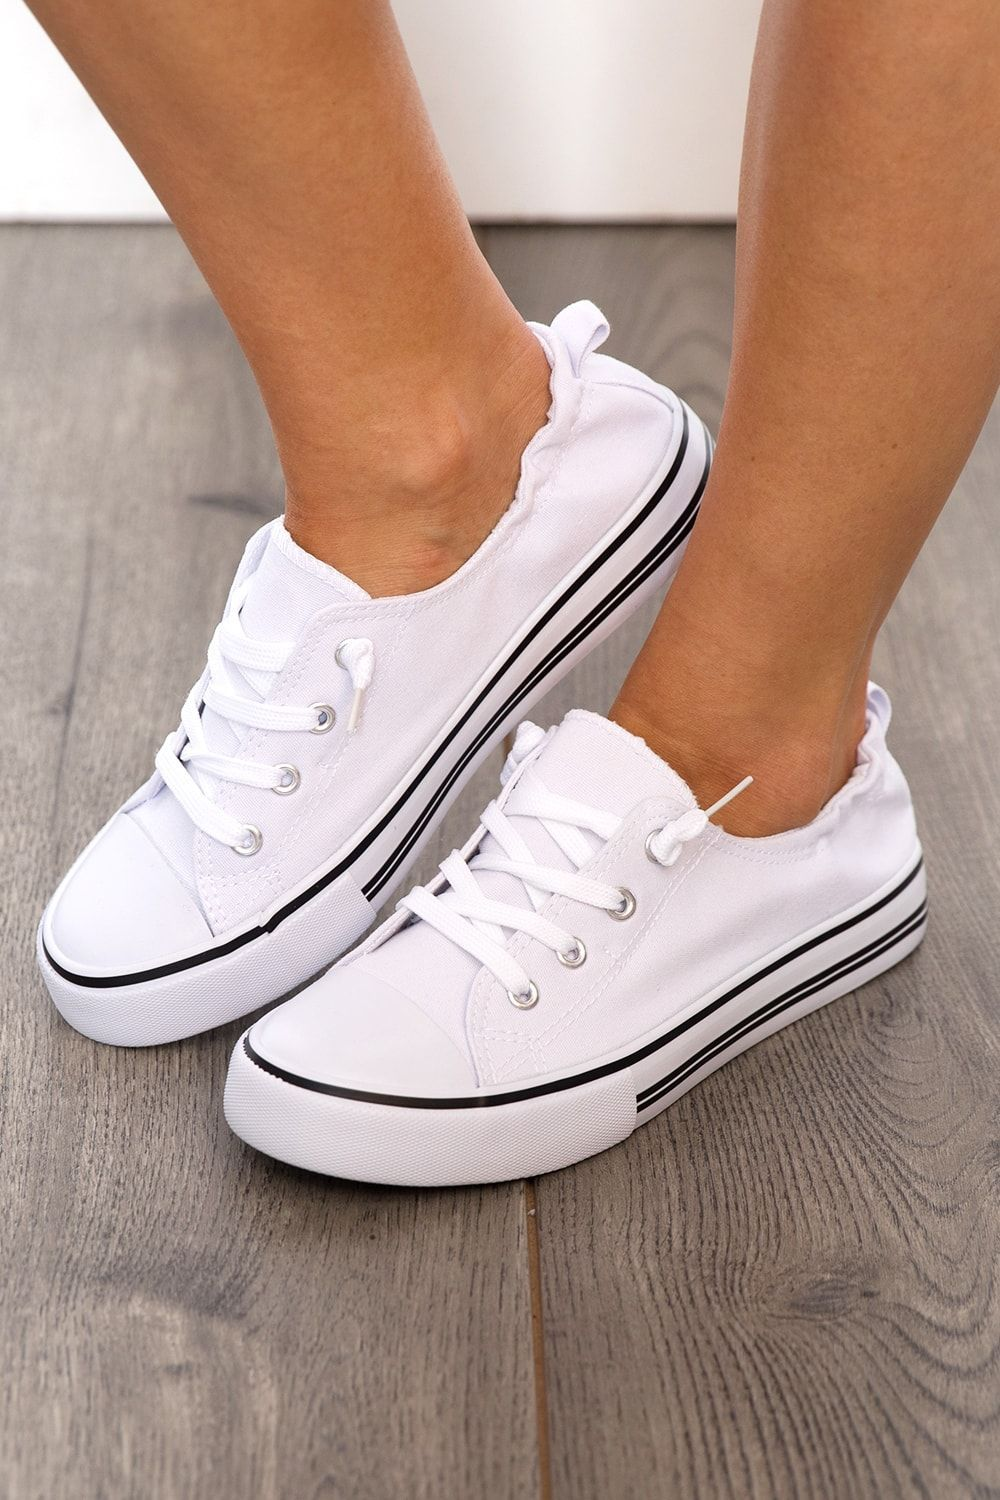 White tennis shoes, Sneakers